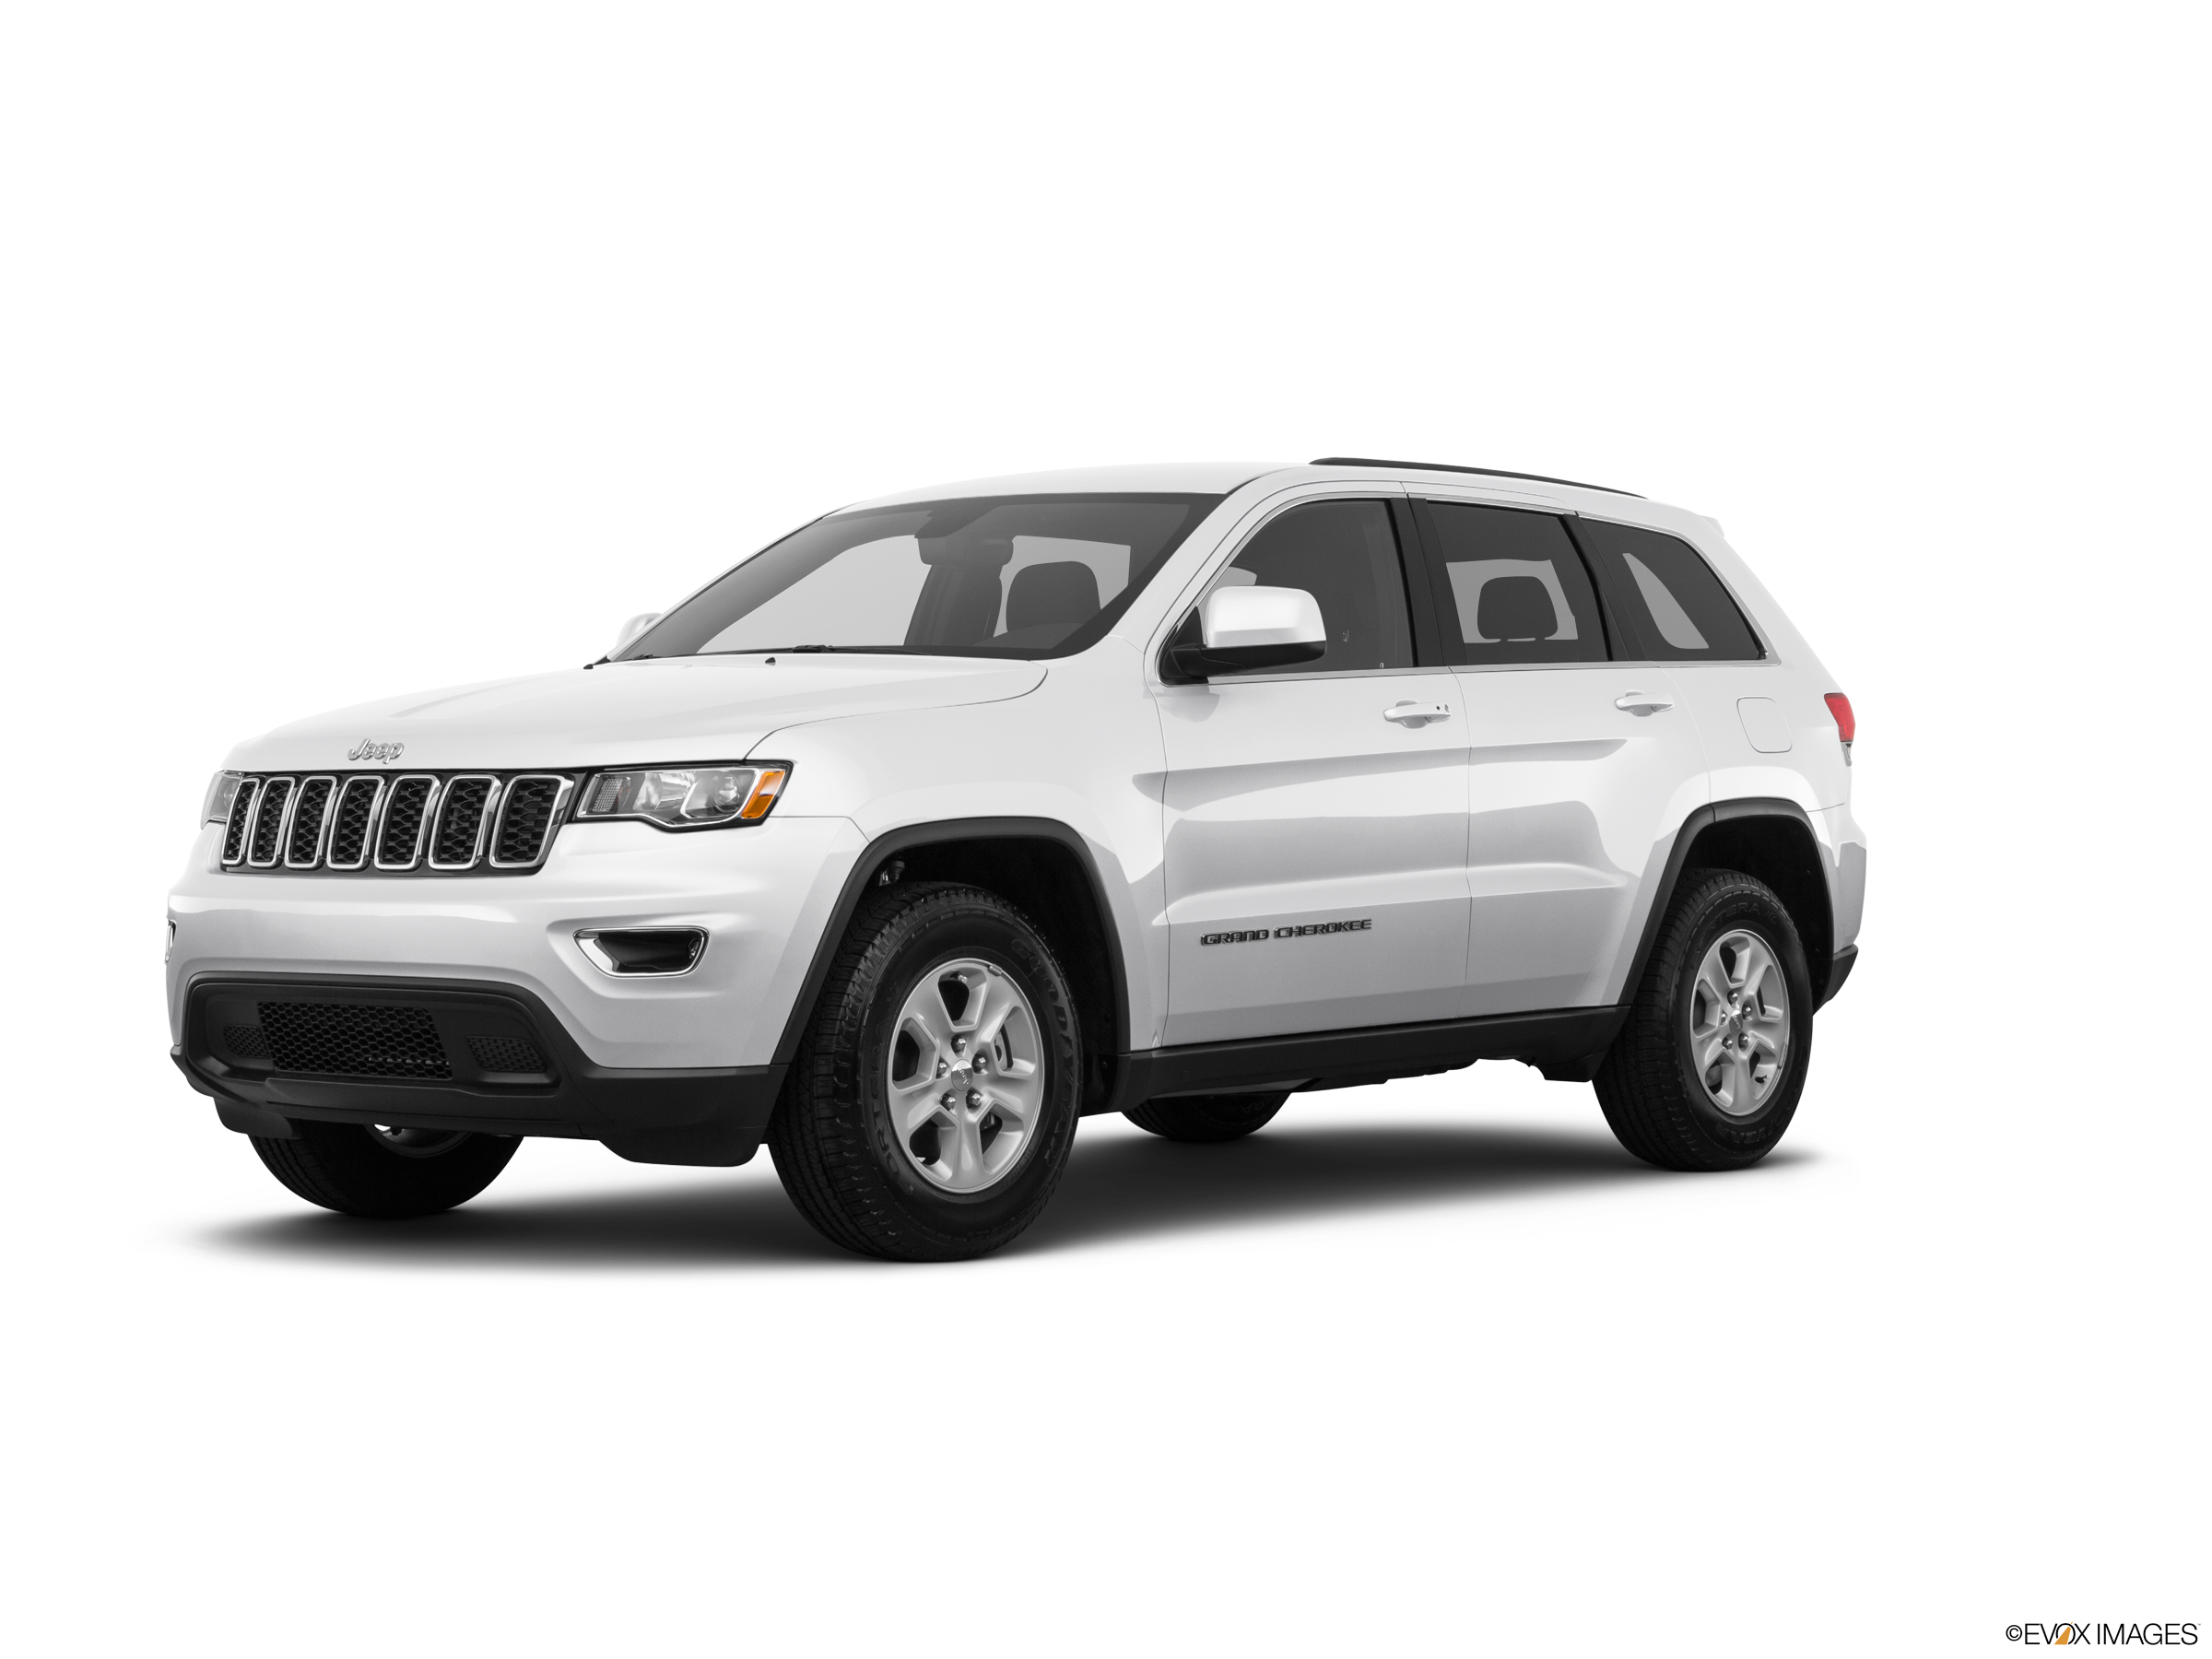 2017 Jeep Grand Cherokee Laredo E Sport Utility 4D for Sale.